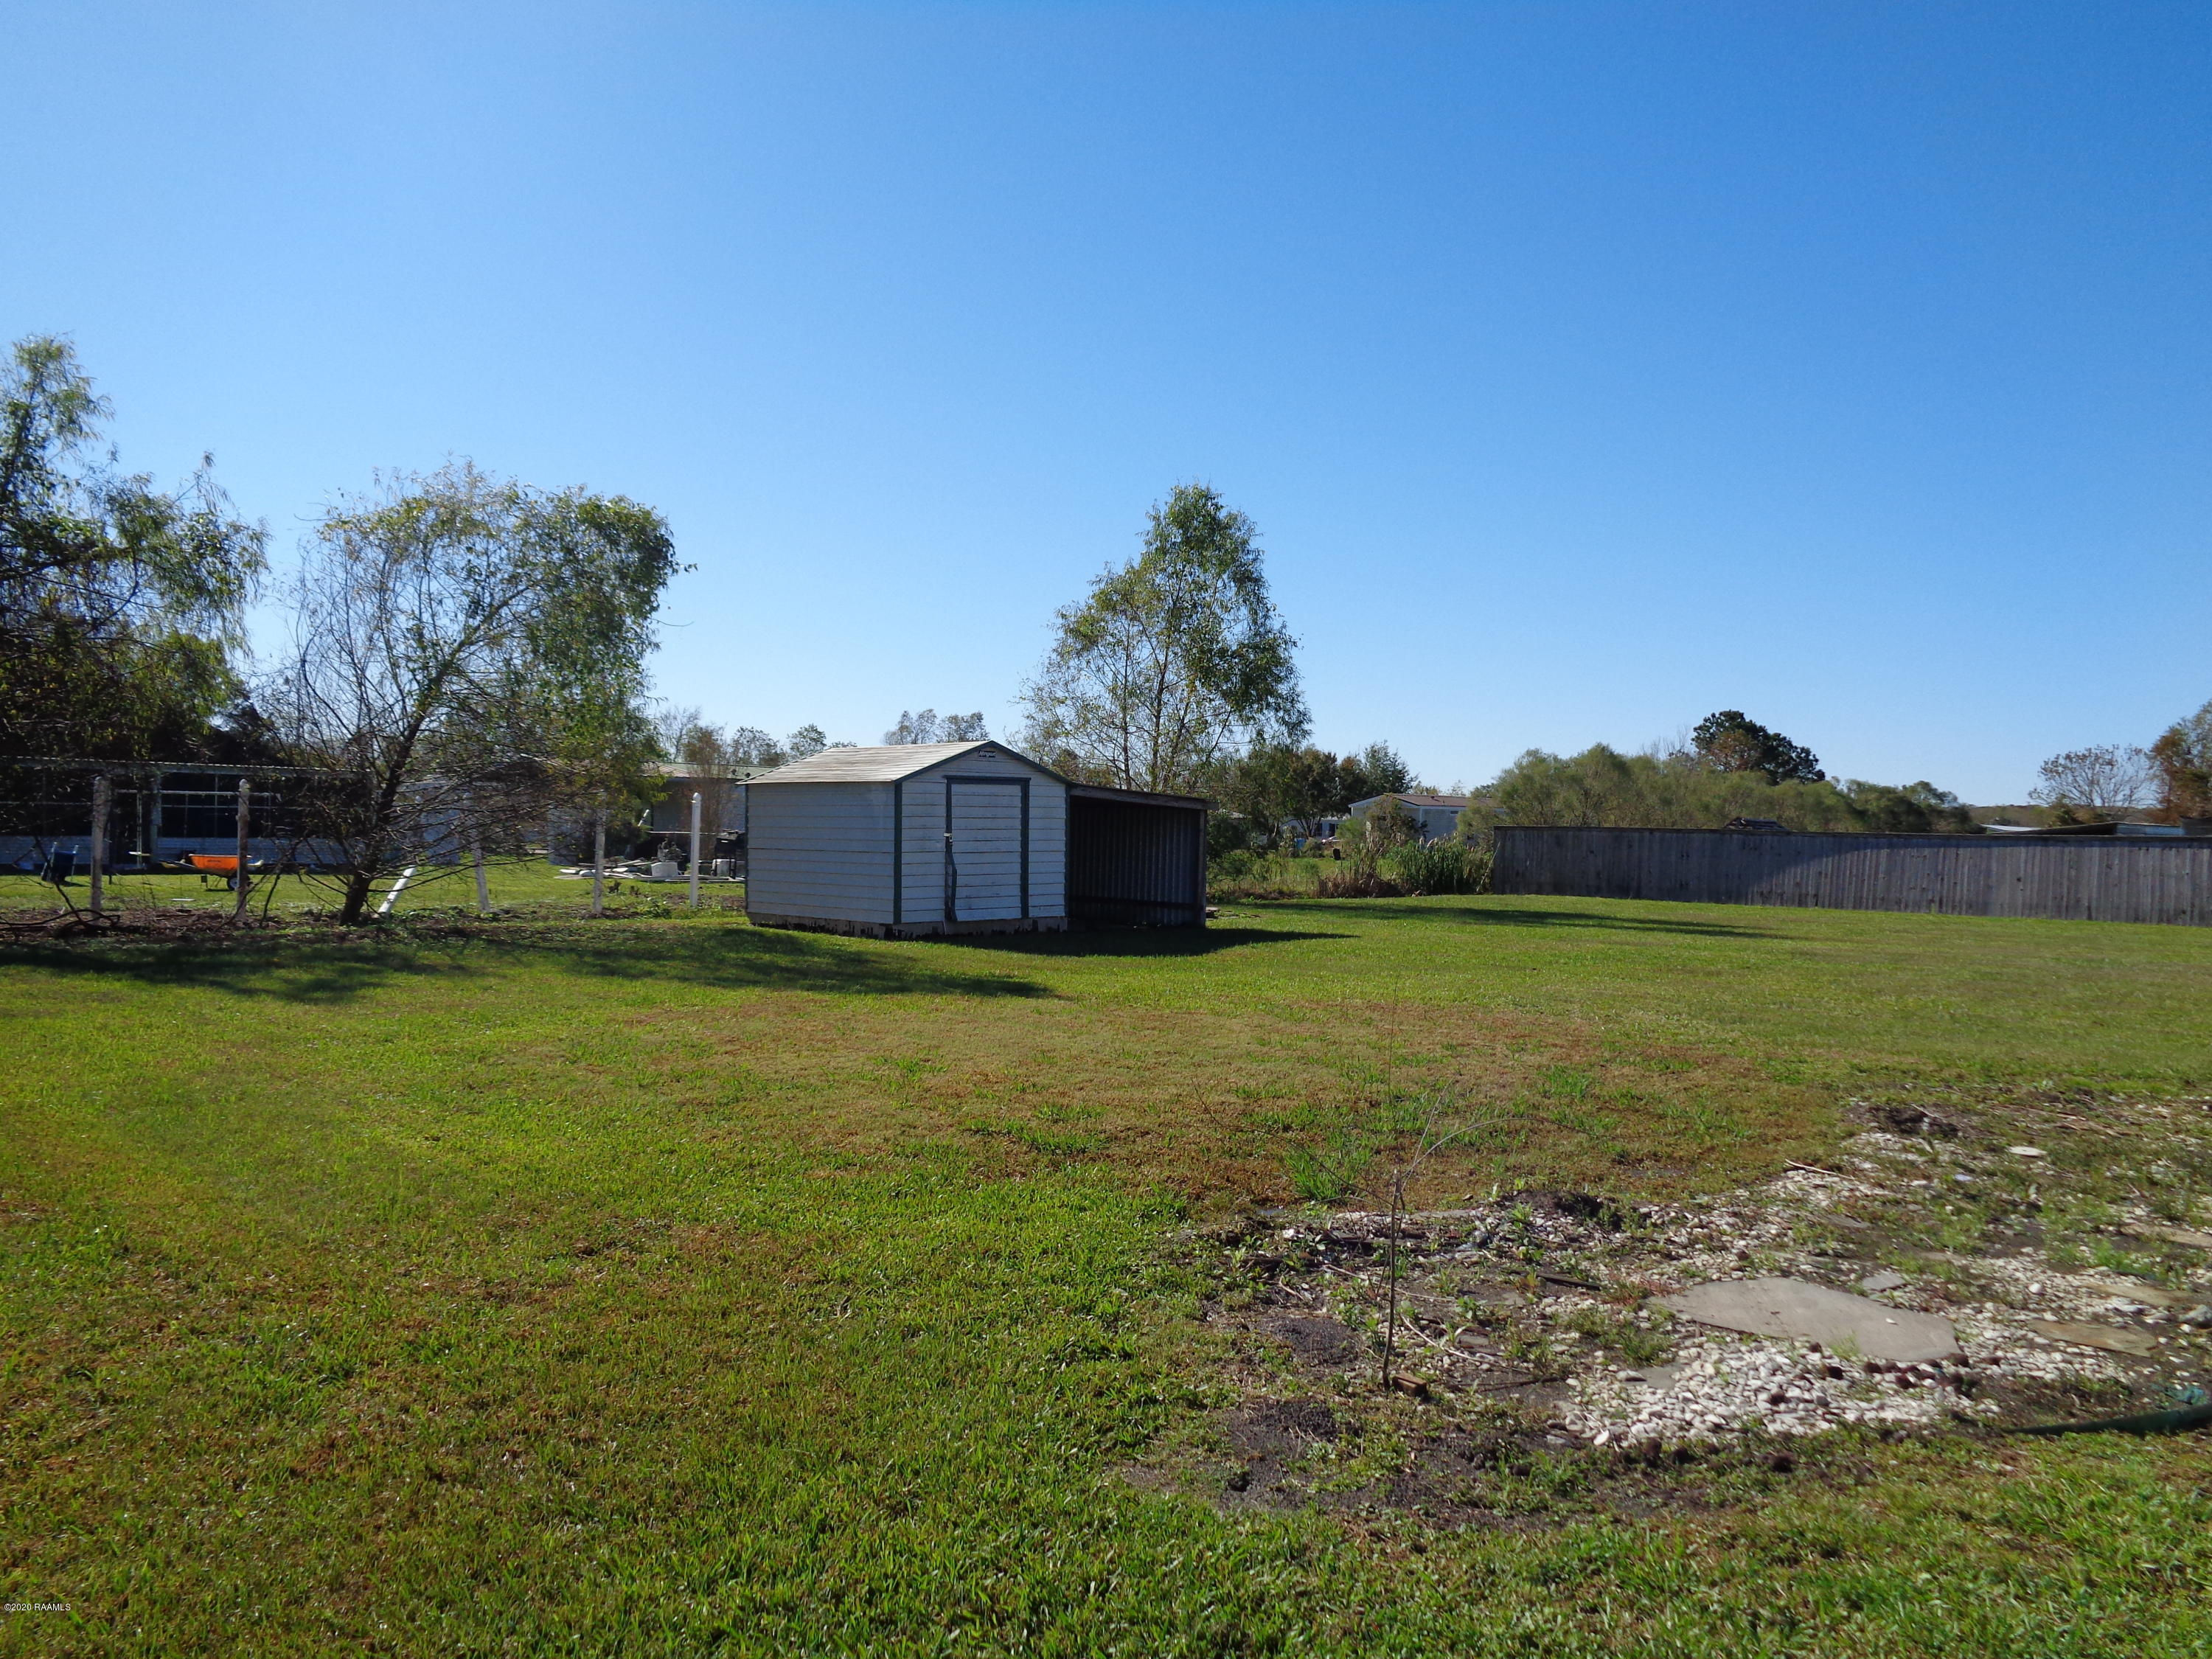 1268 Wilfred Champagne, St. Martinville, LA 70582 Photo #10